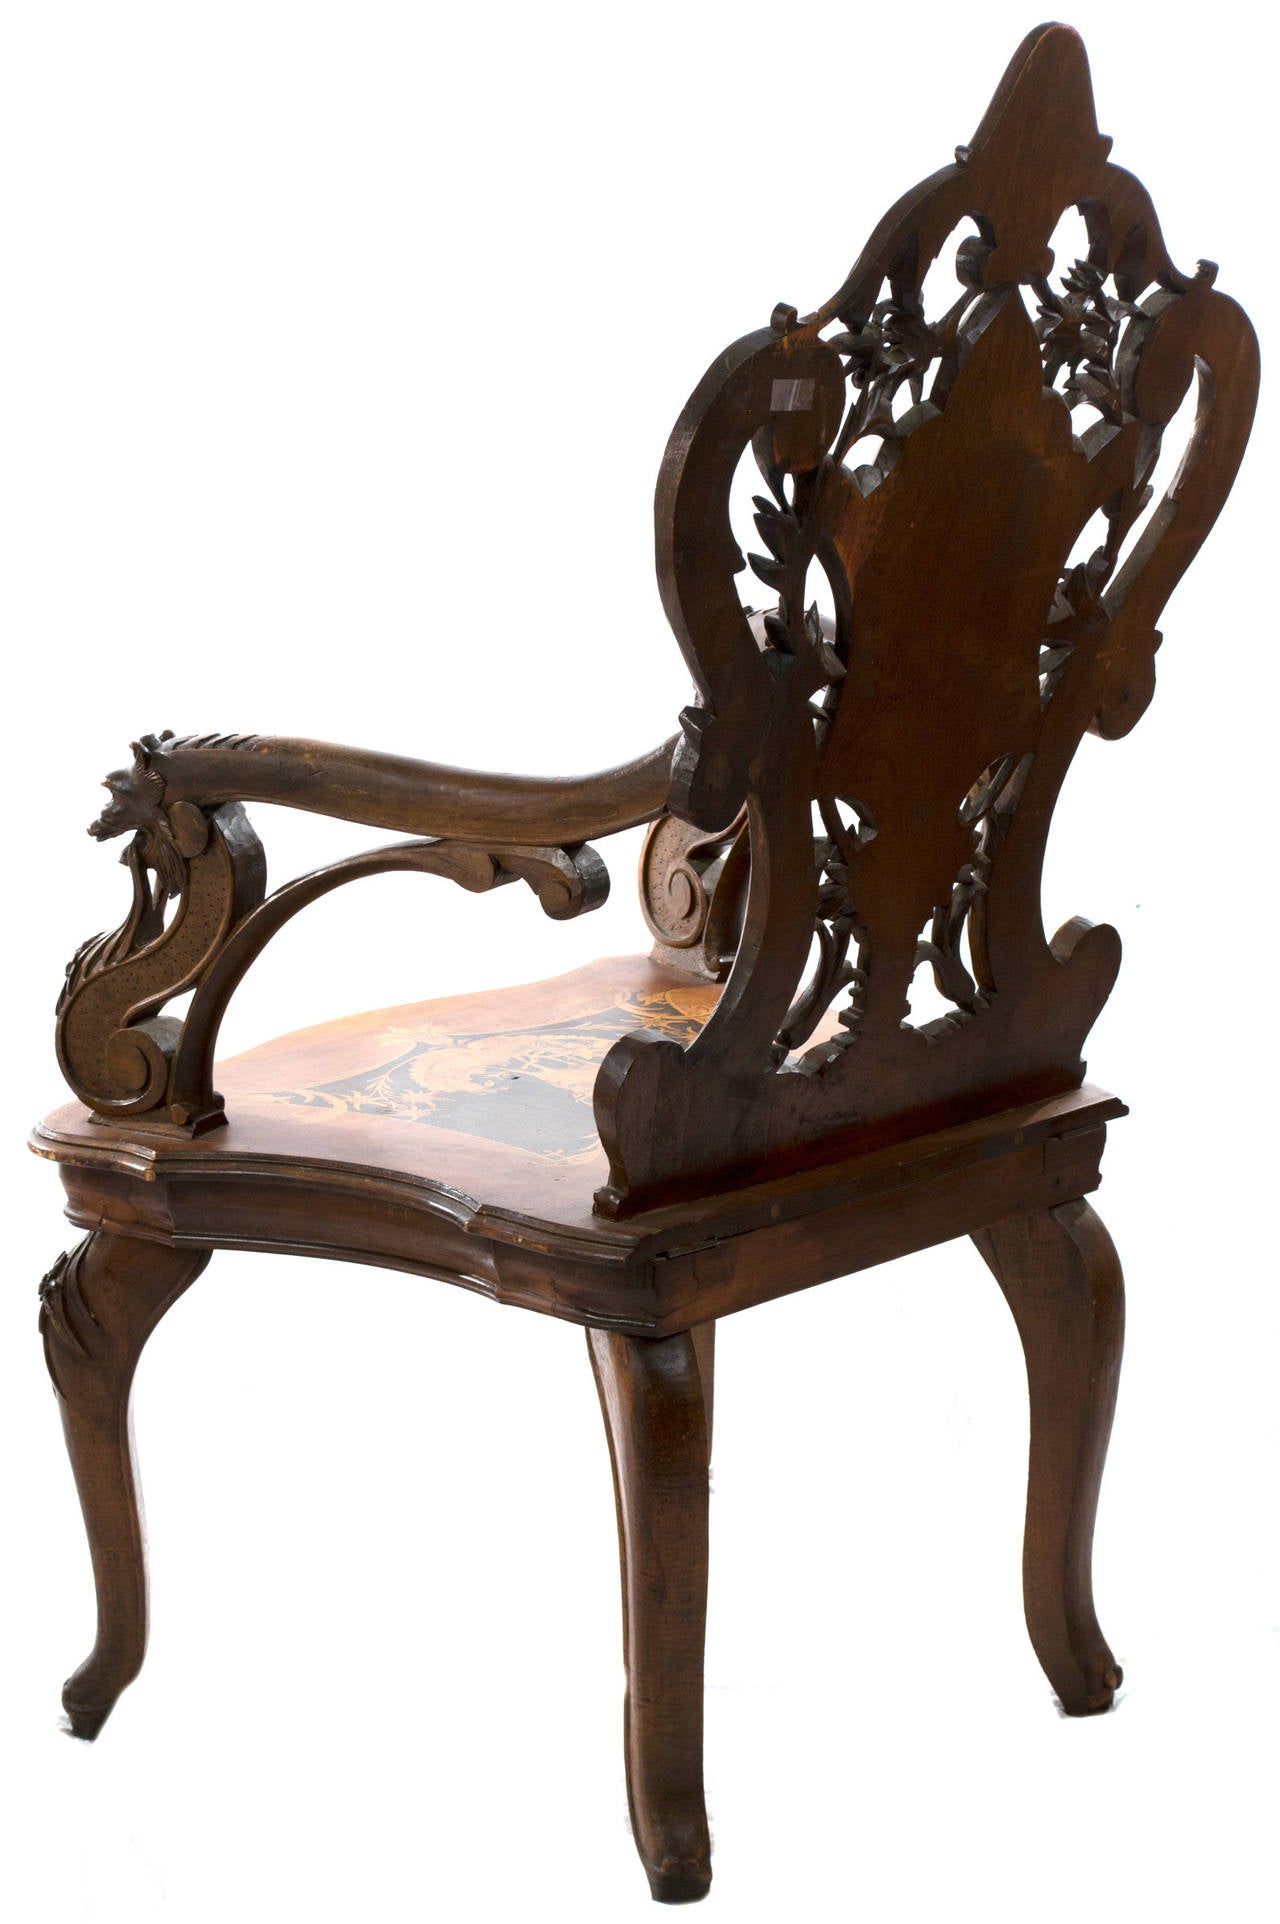 A Late Nineteenth Century, Black Forest Arm Chair With Elaborately Carved  Back